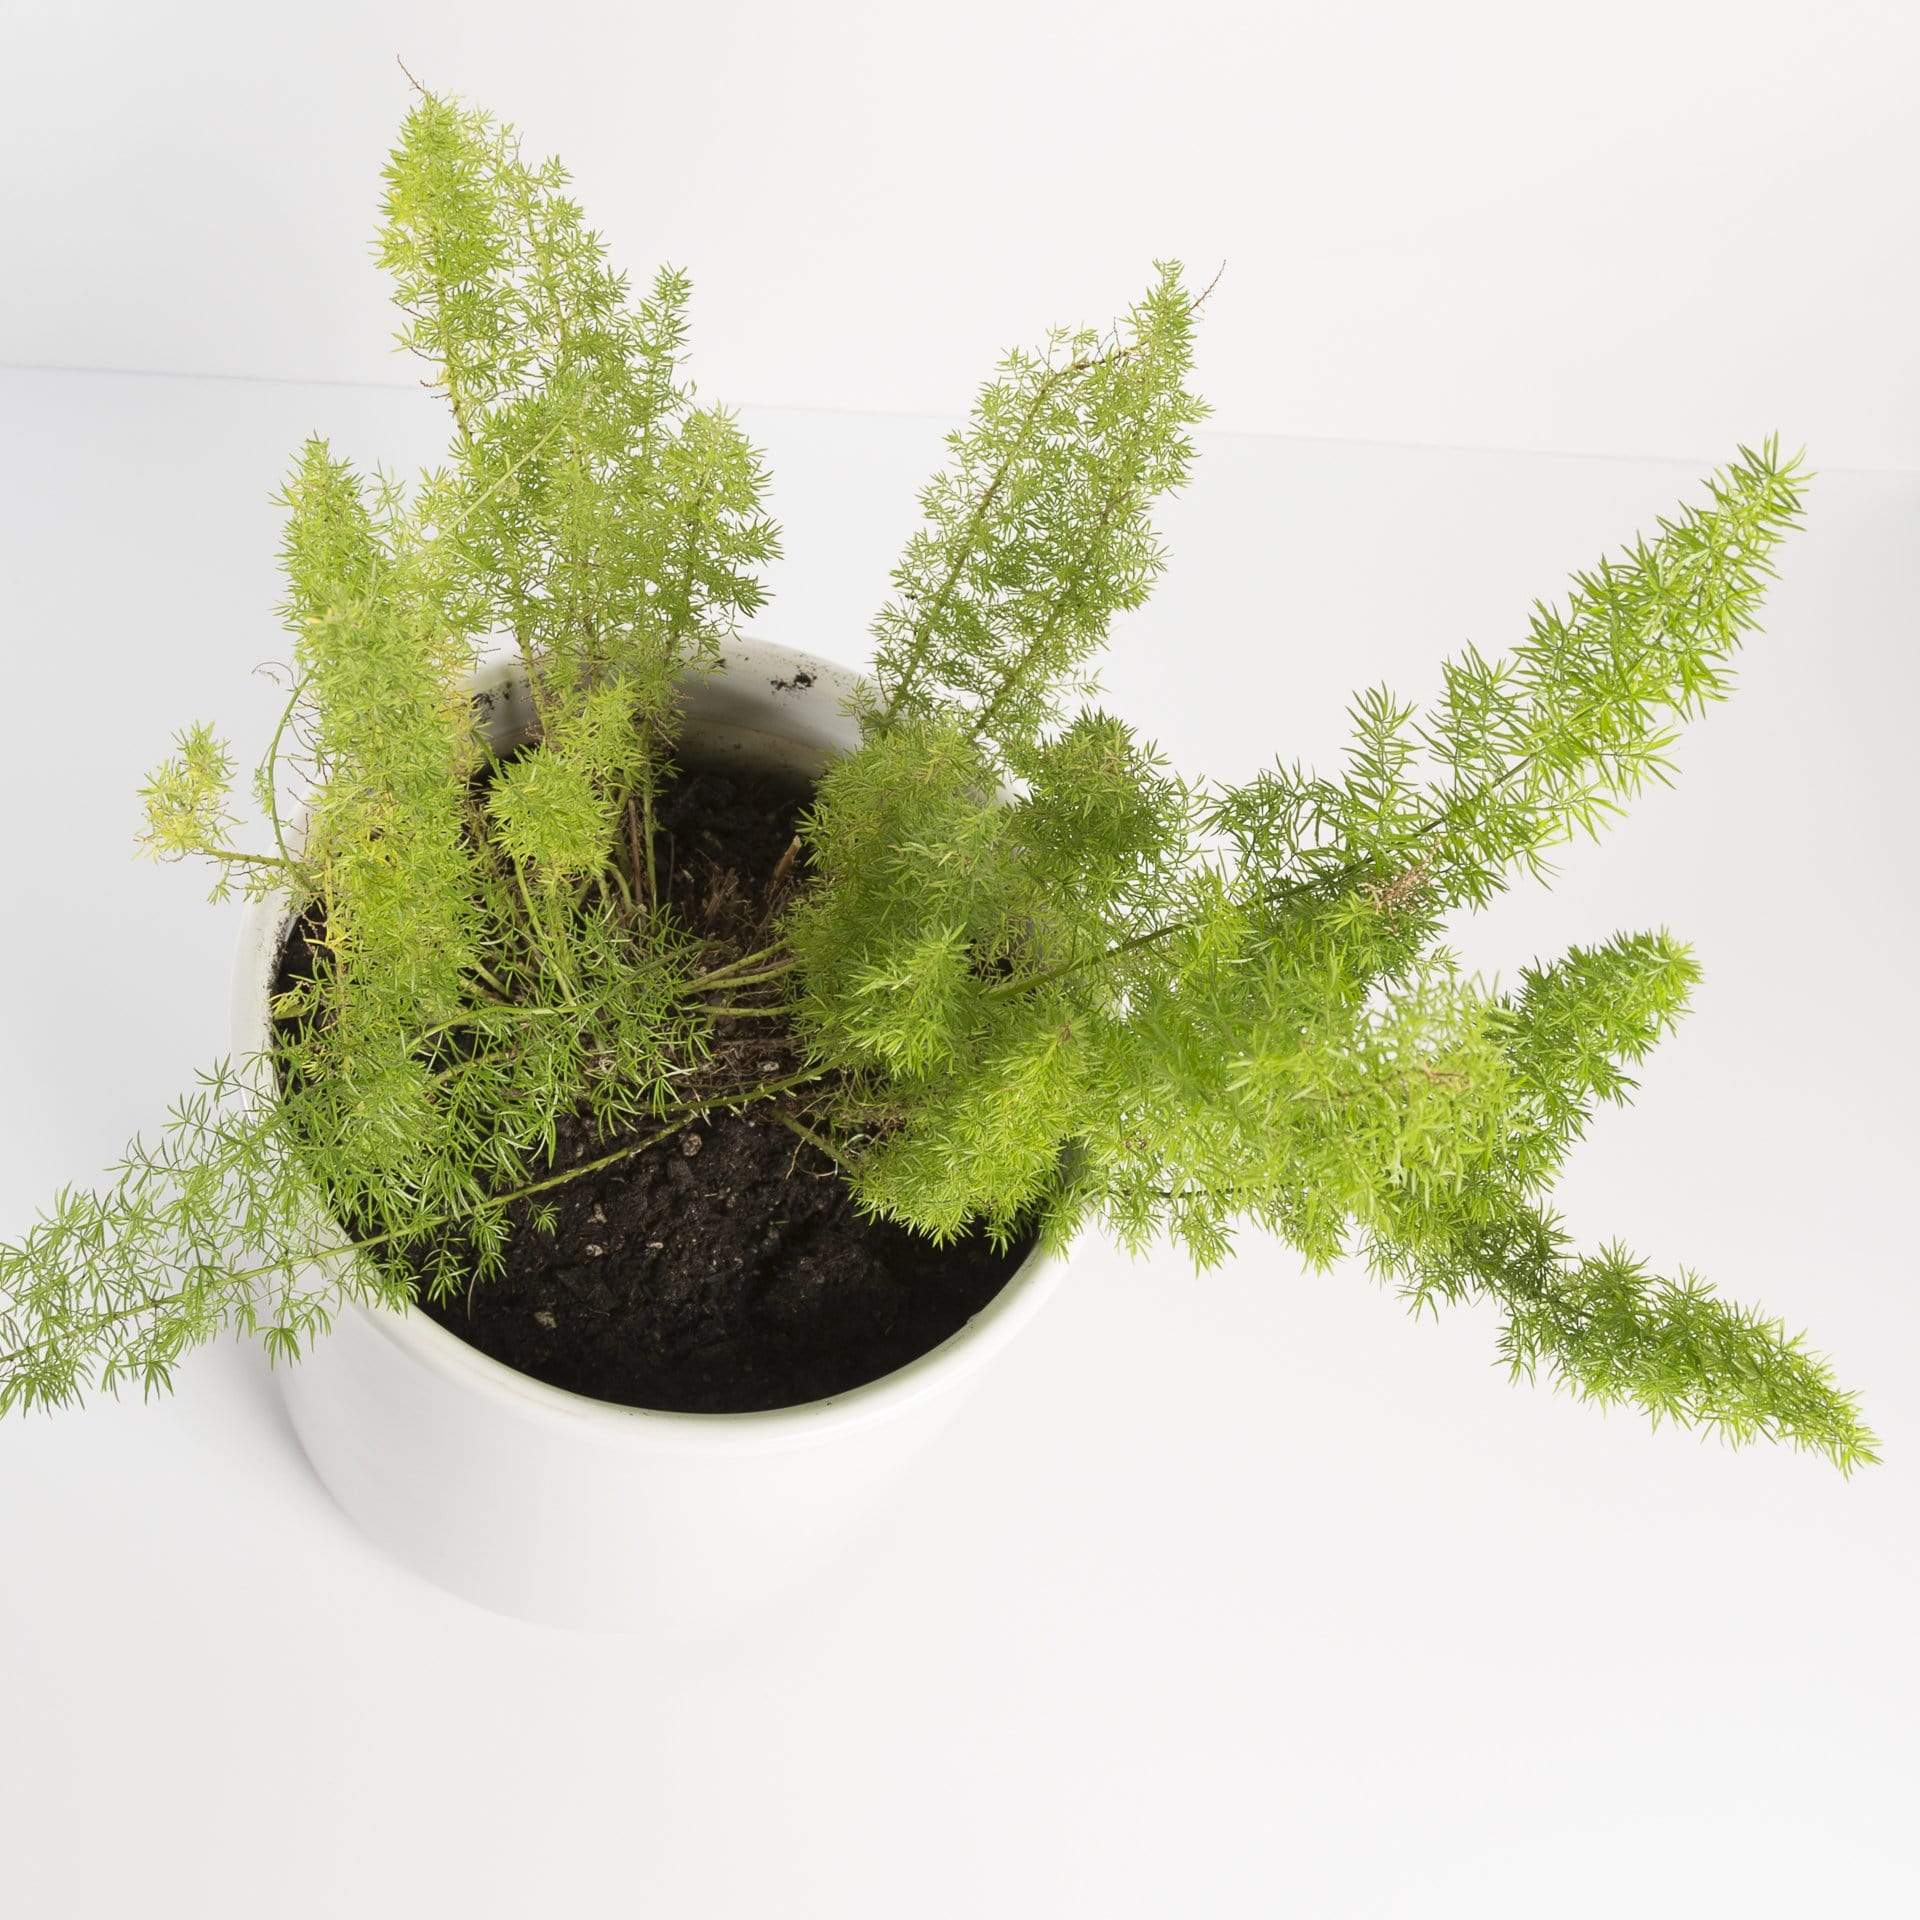 "Fern 'Foxtail' 10"" - Urban Sprouts"